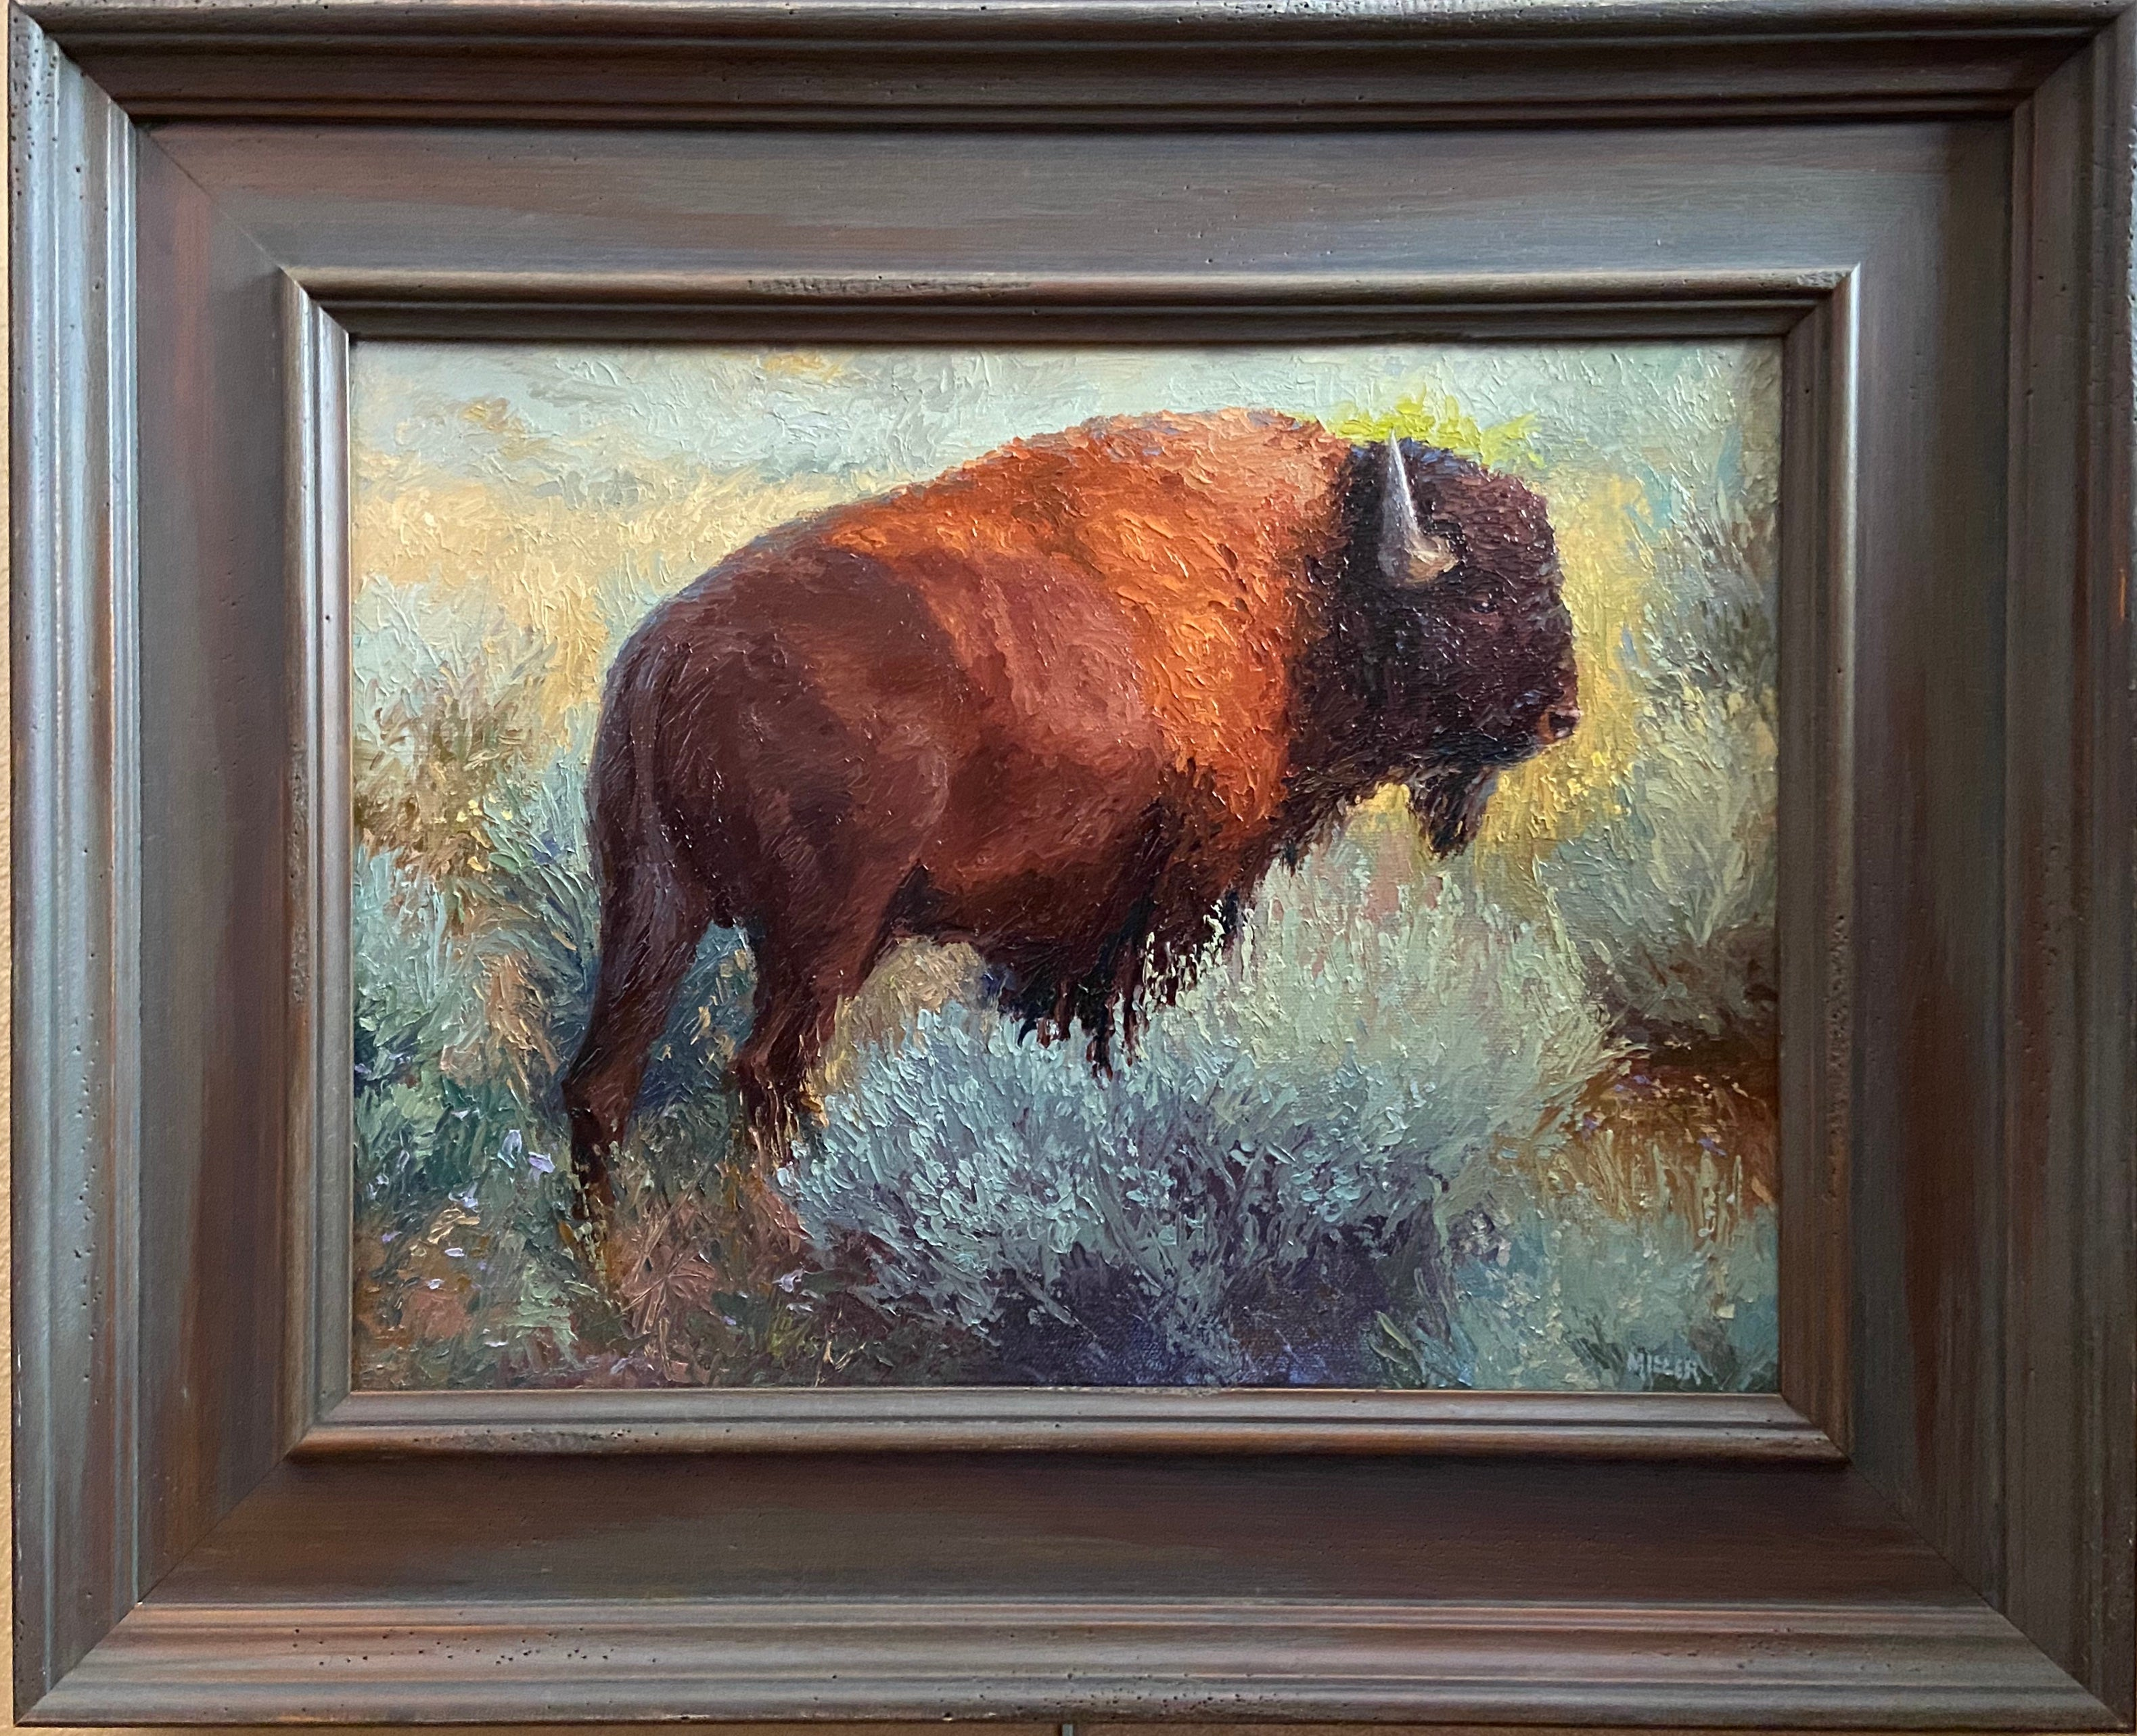 The Boss (American Bison)